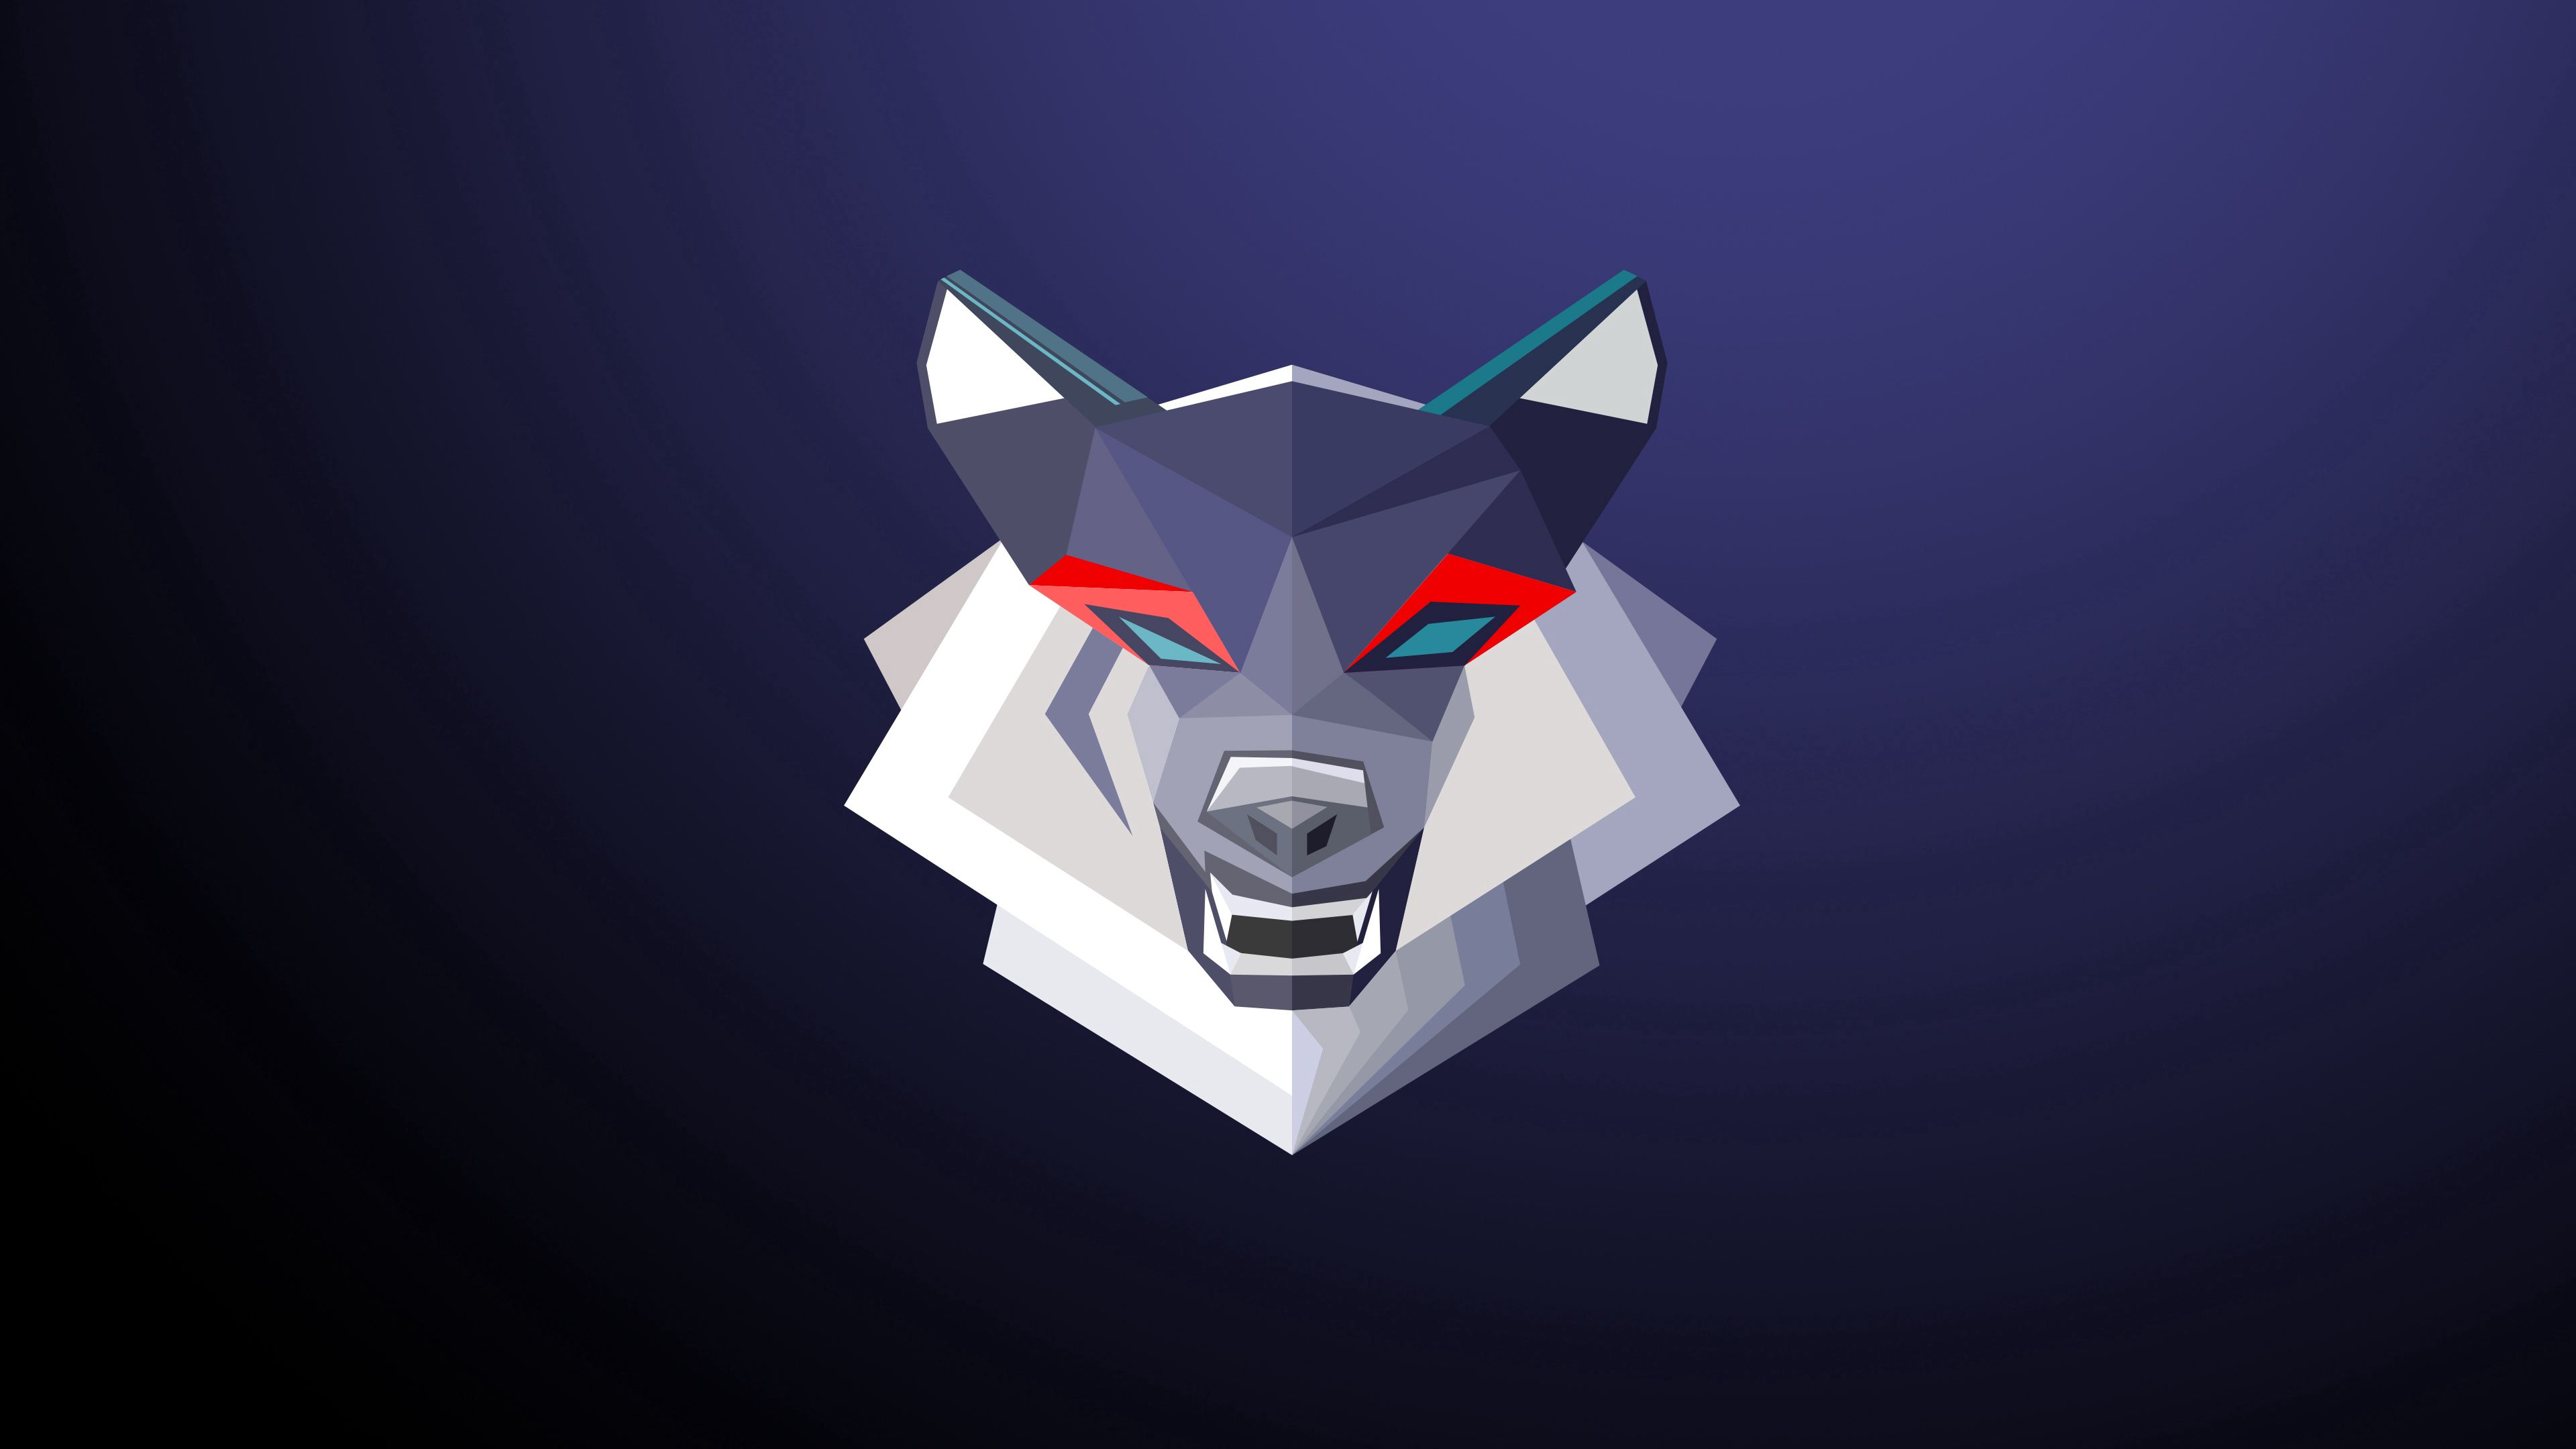 Best Wolf wallpapers for phone screen